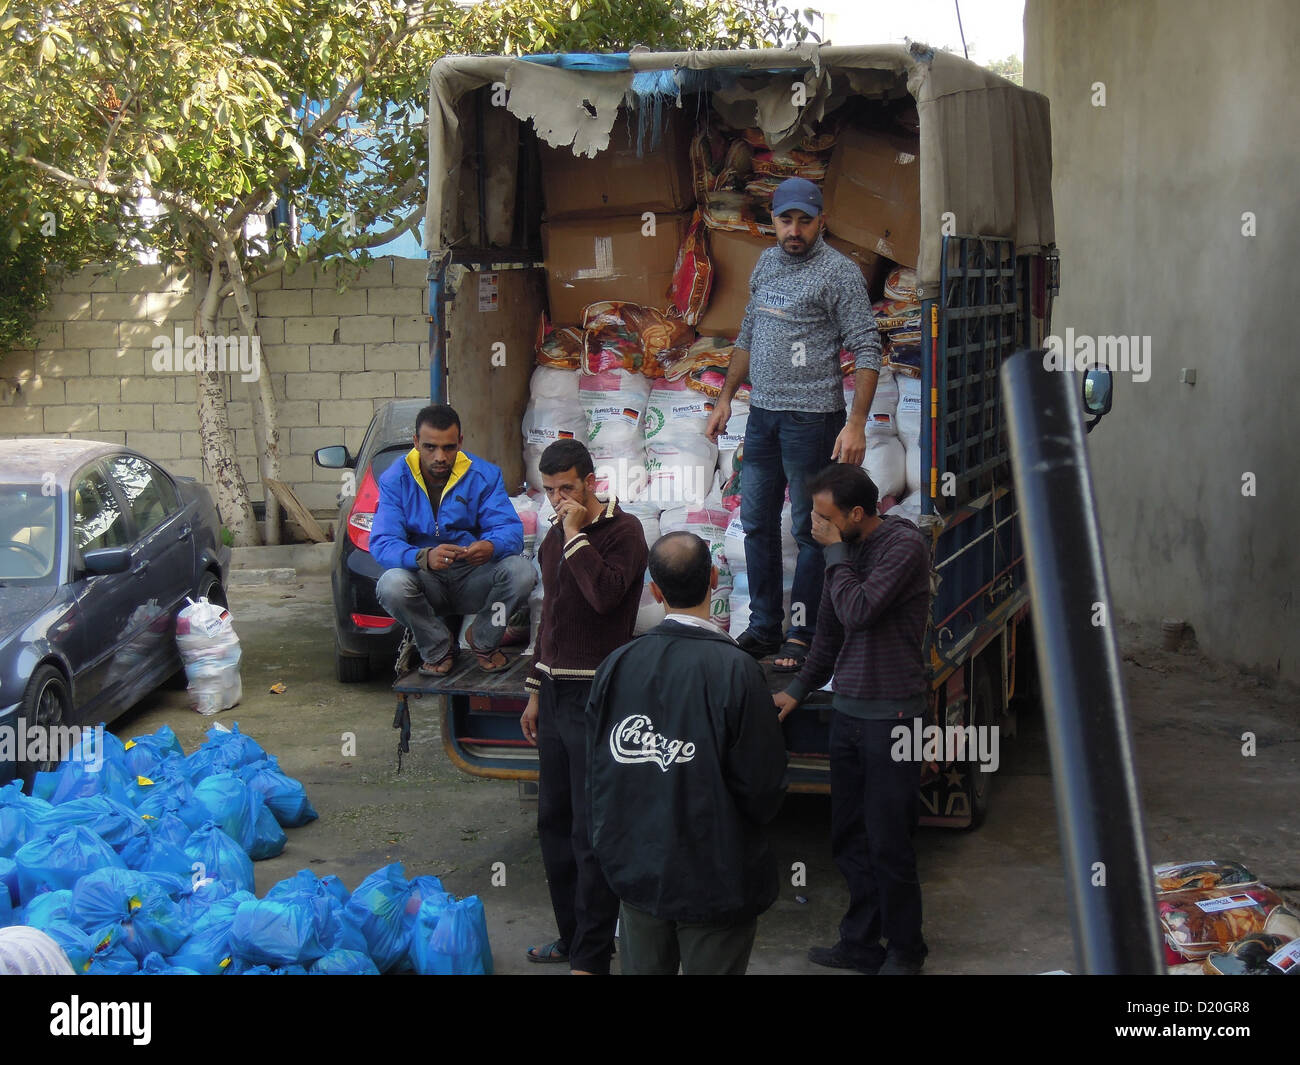 Goods are delivered to a refugees camp in southern Lebanon - Stock Image